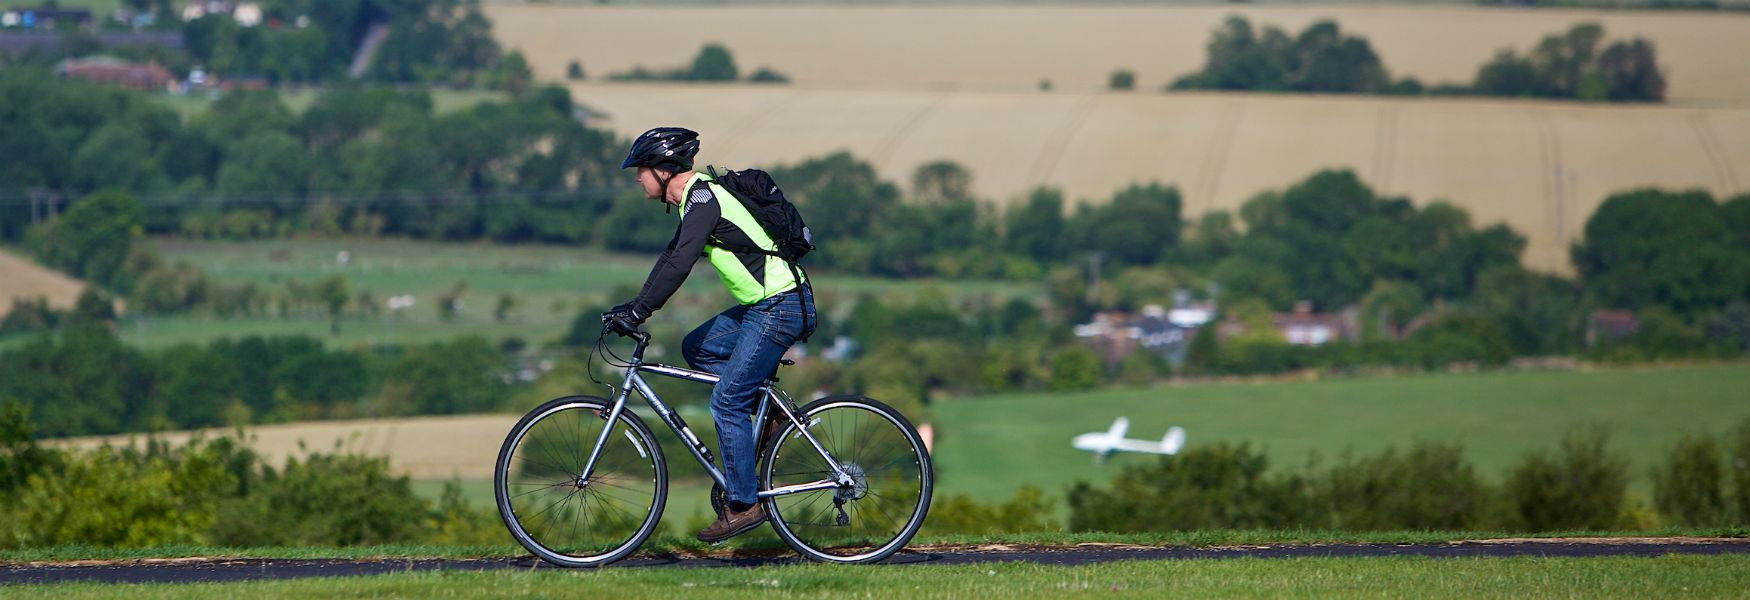 Cycling in Bedfordshire